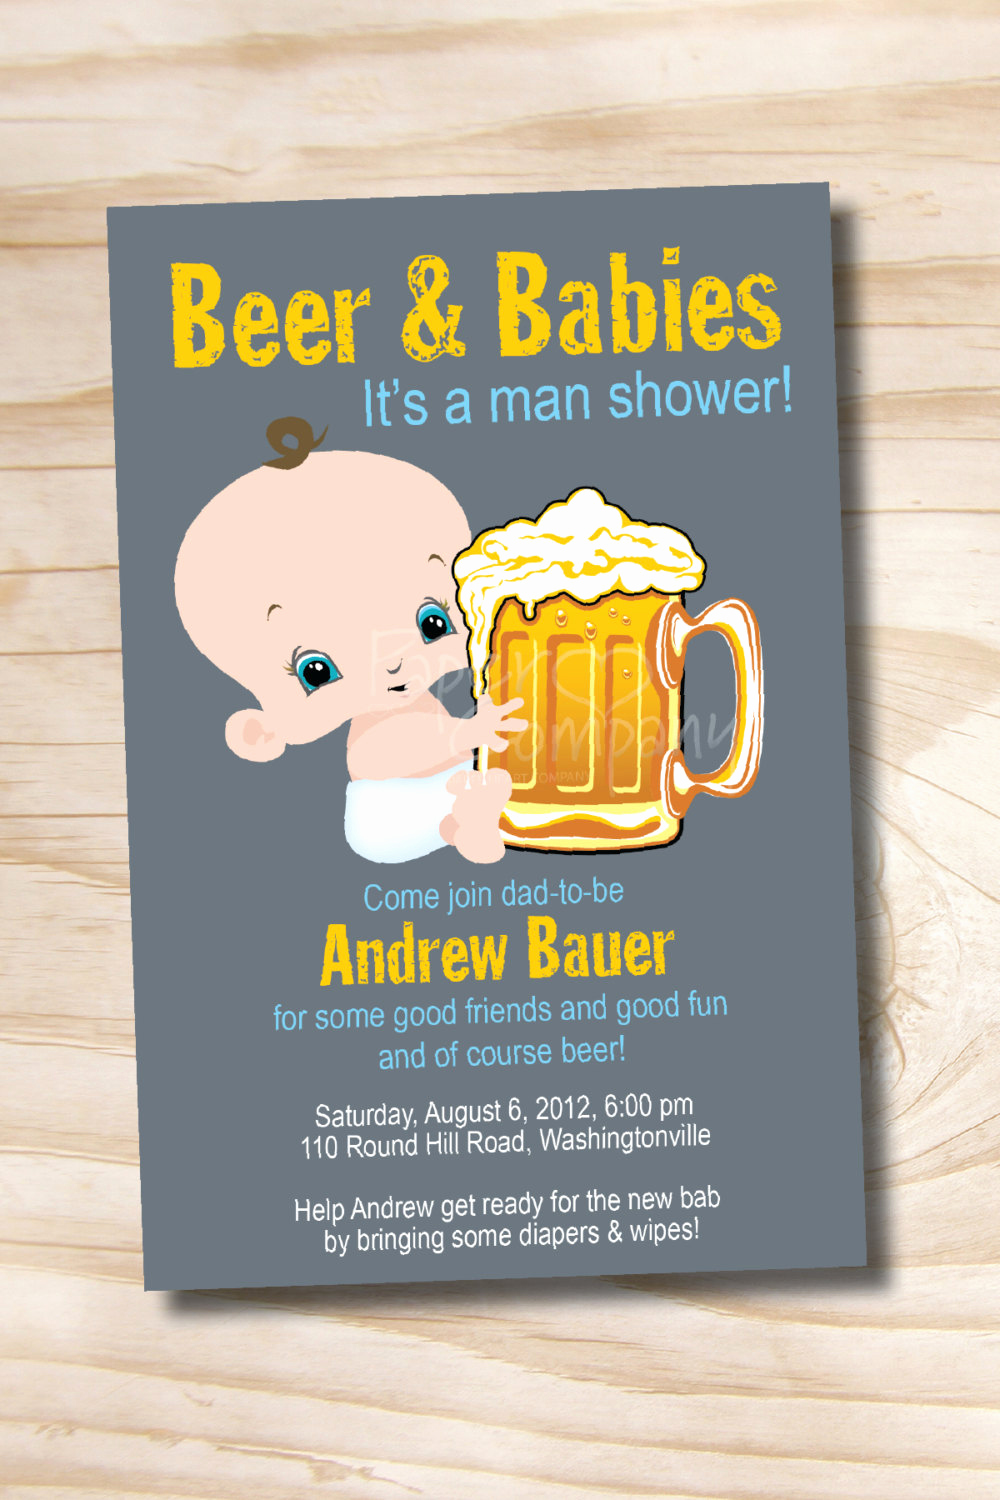 Diaper Party Invitation Templates New Man Shower Beer and Babies Diaper Party Invitation Printable